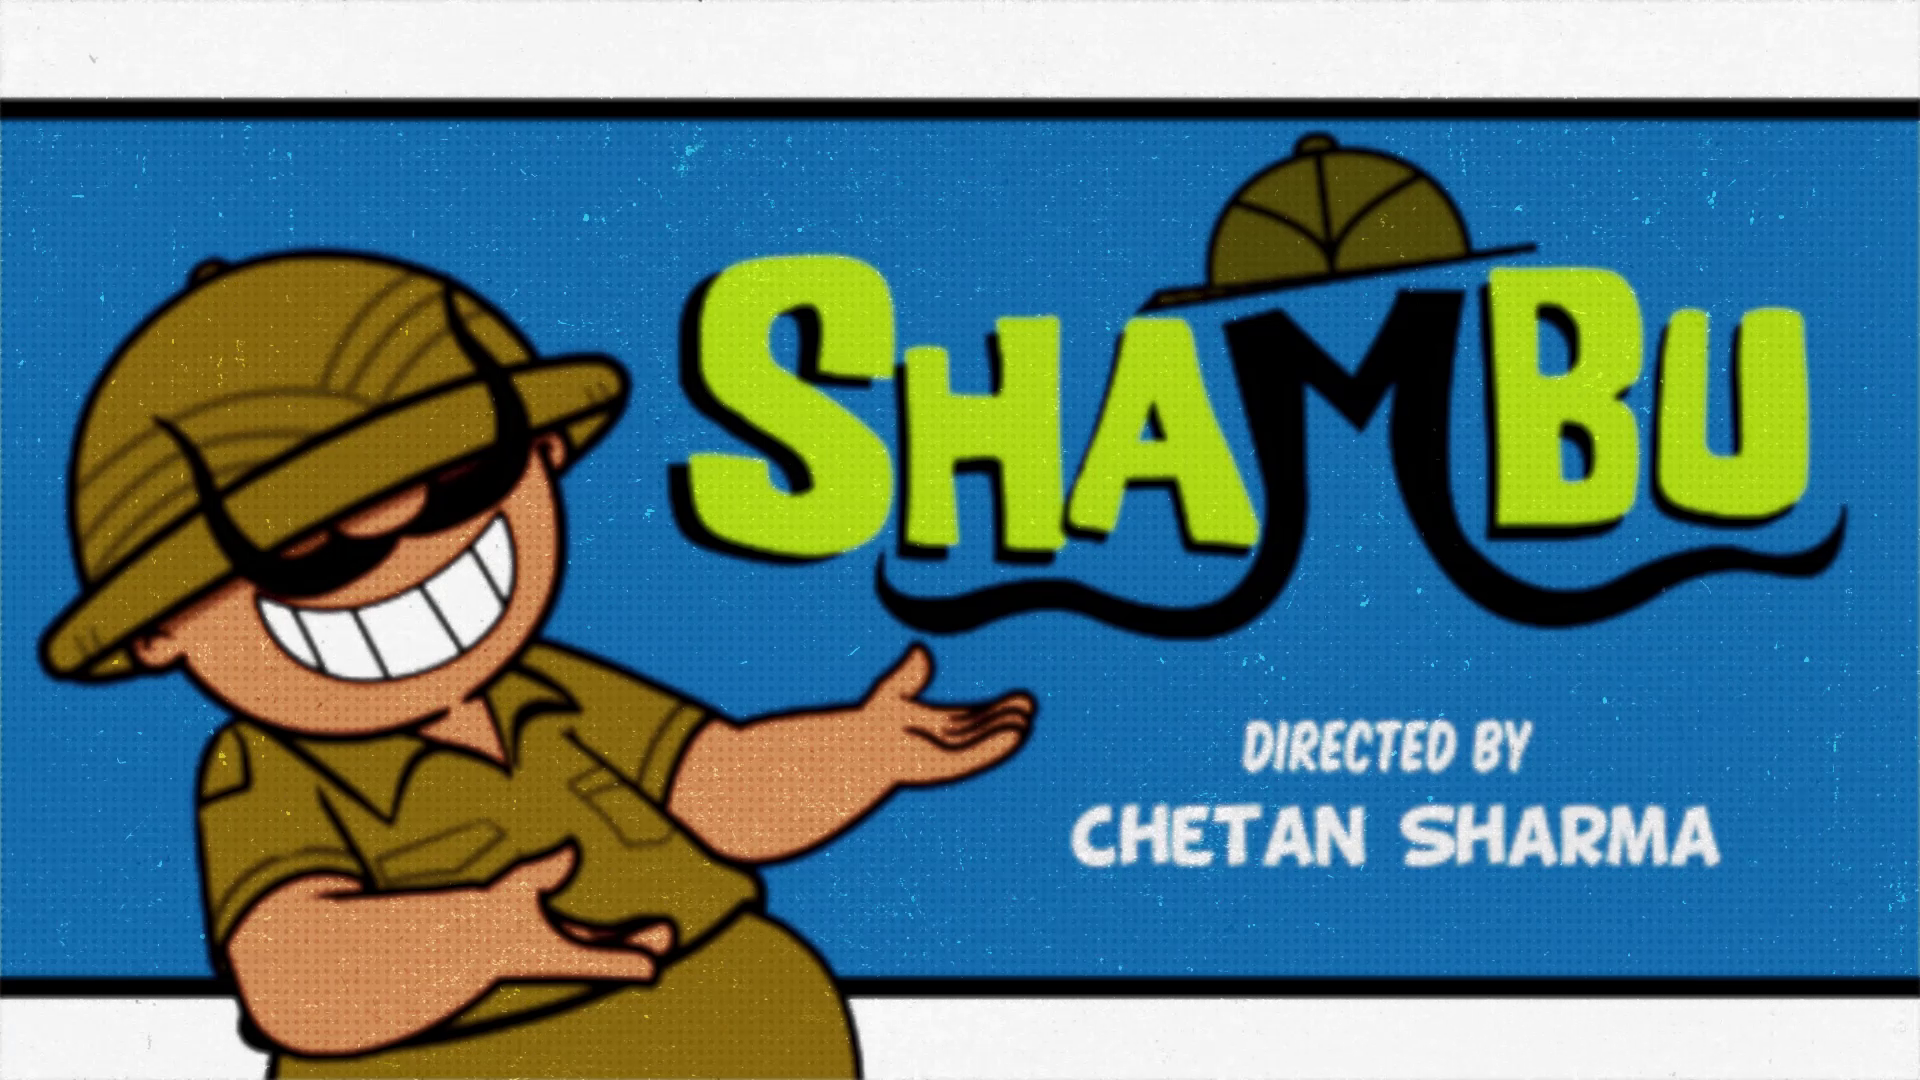 Shambu is a brand new animated microseries premiering on Tinkle